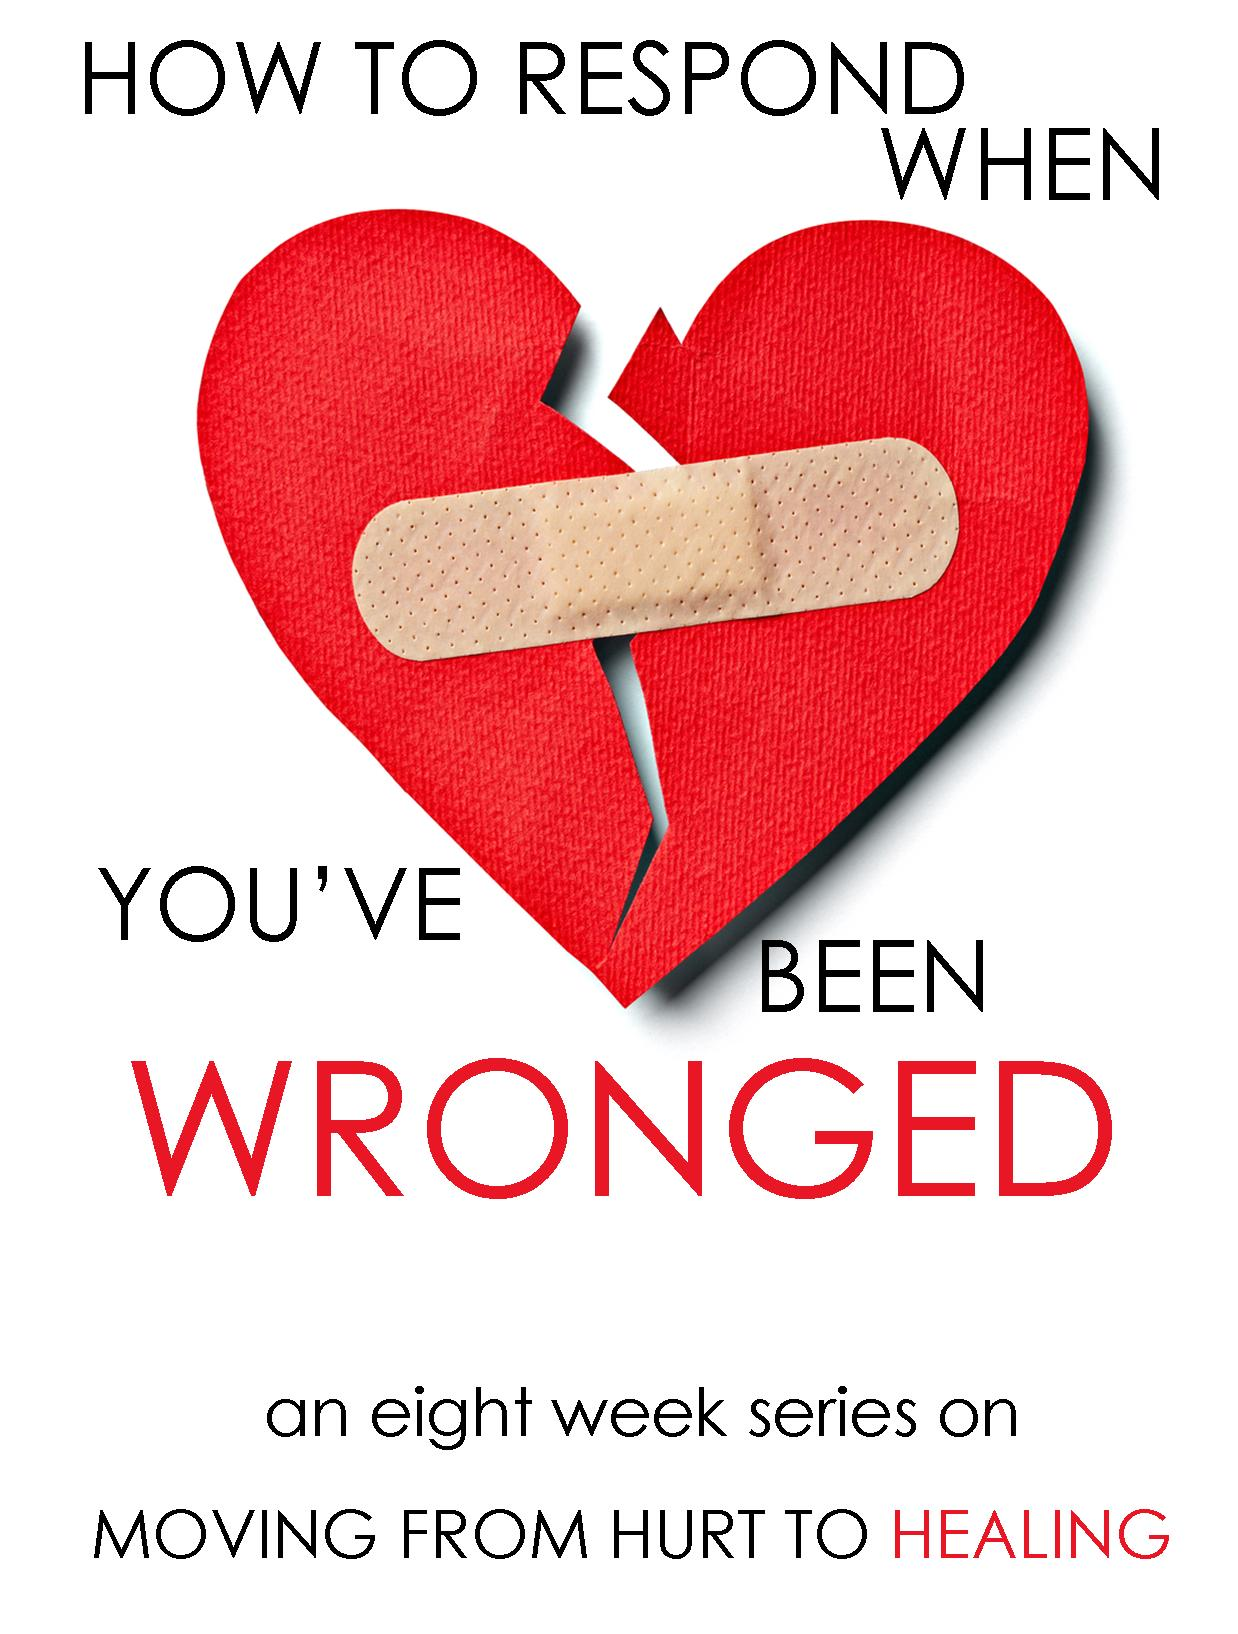 WRONGED SERIES GRAPHIC